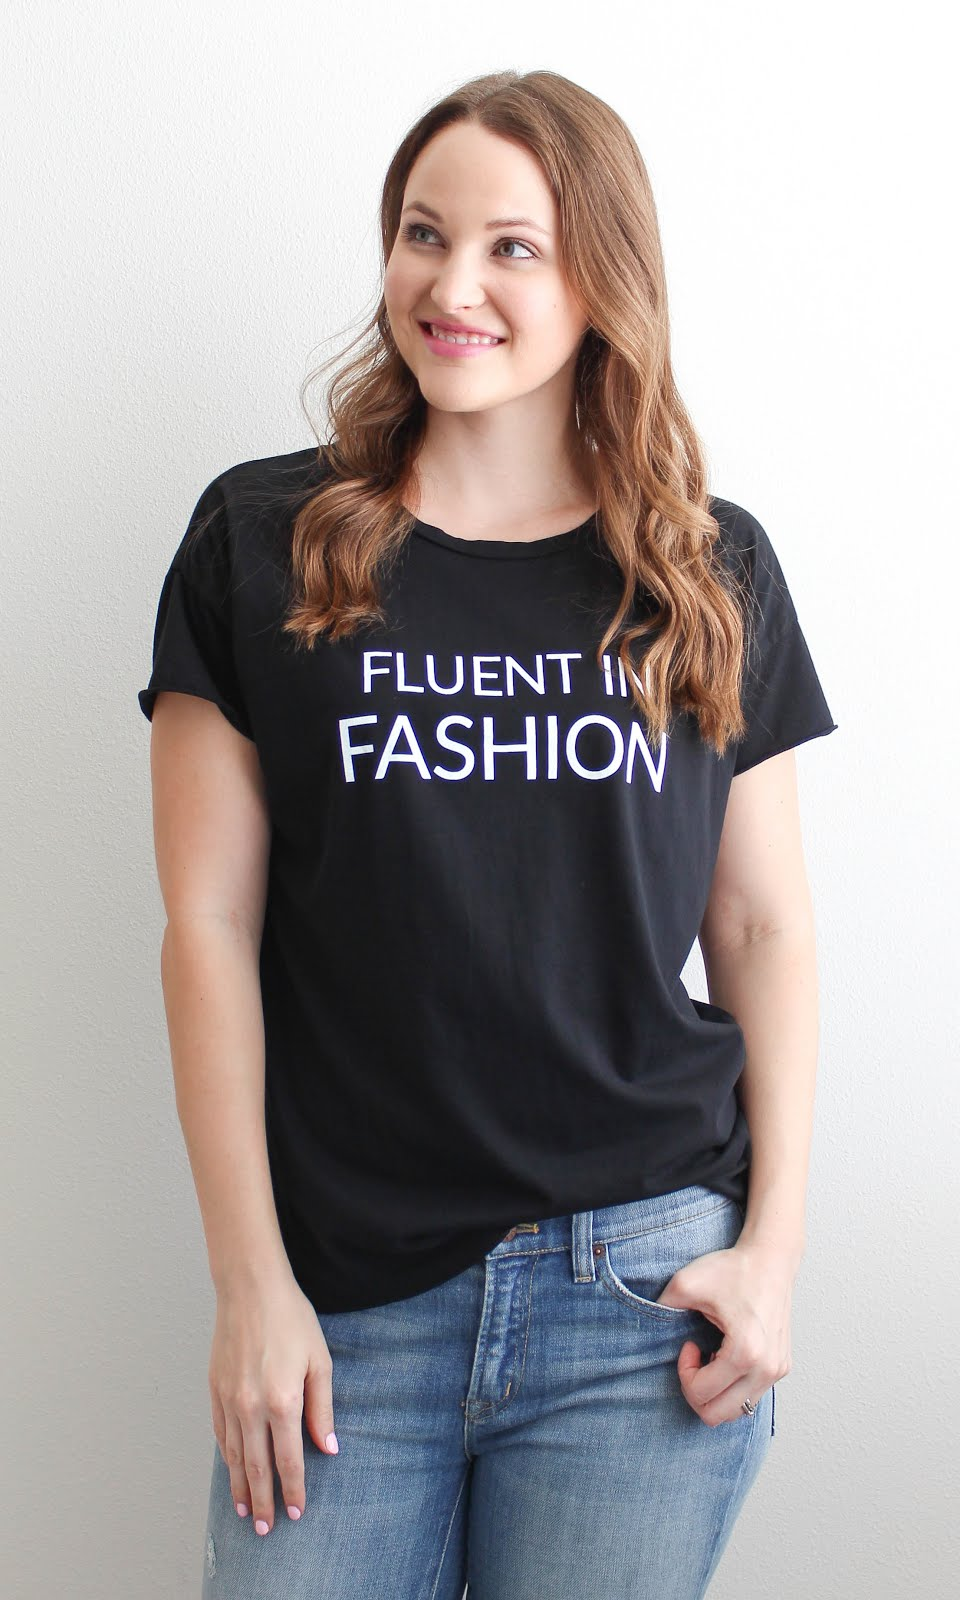 Fluent in Fashion